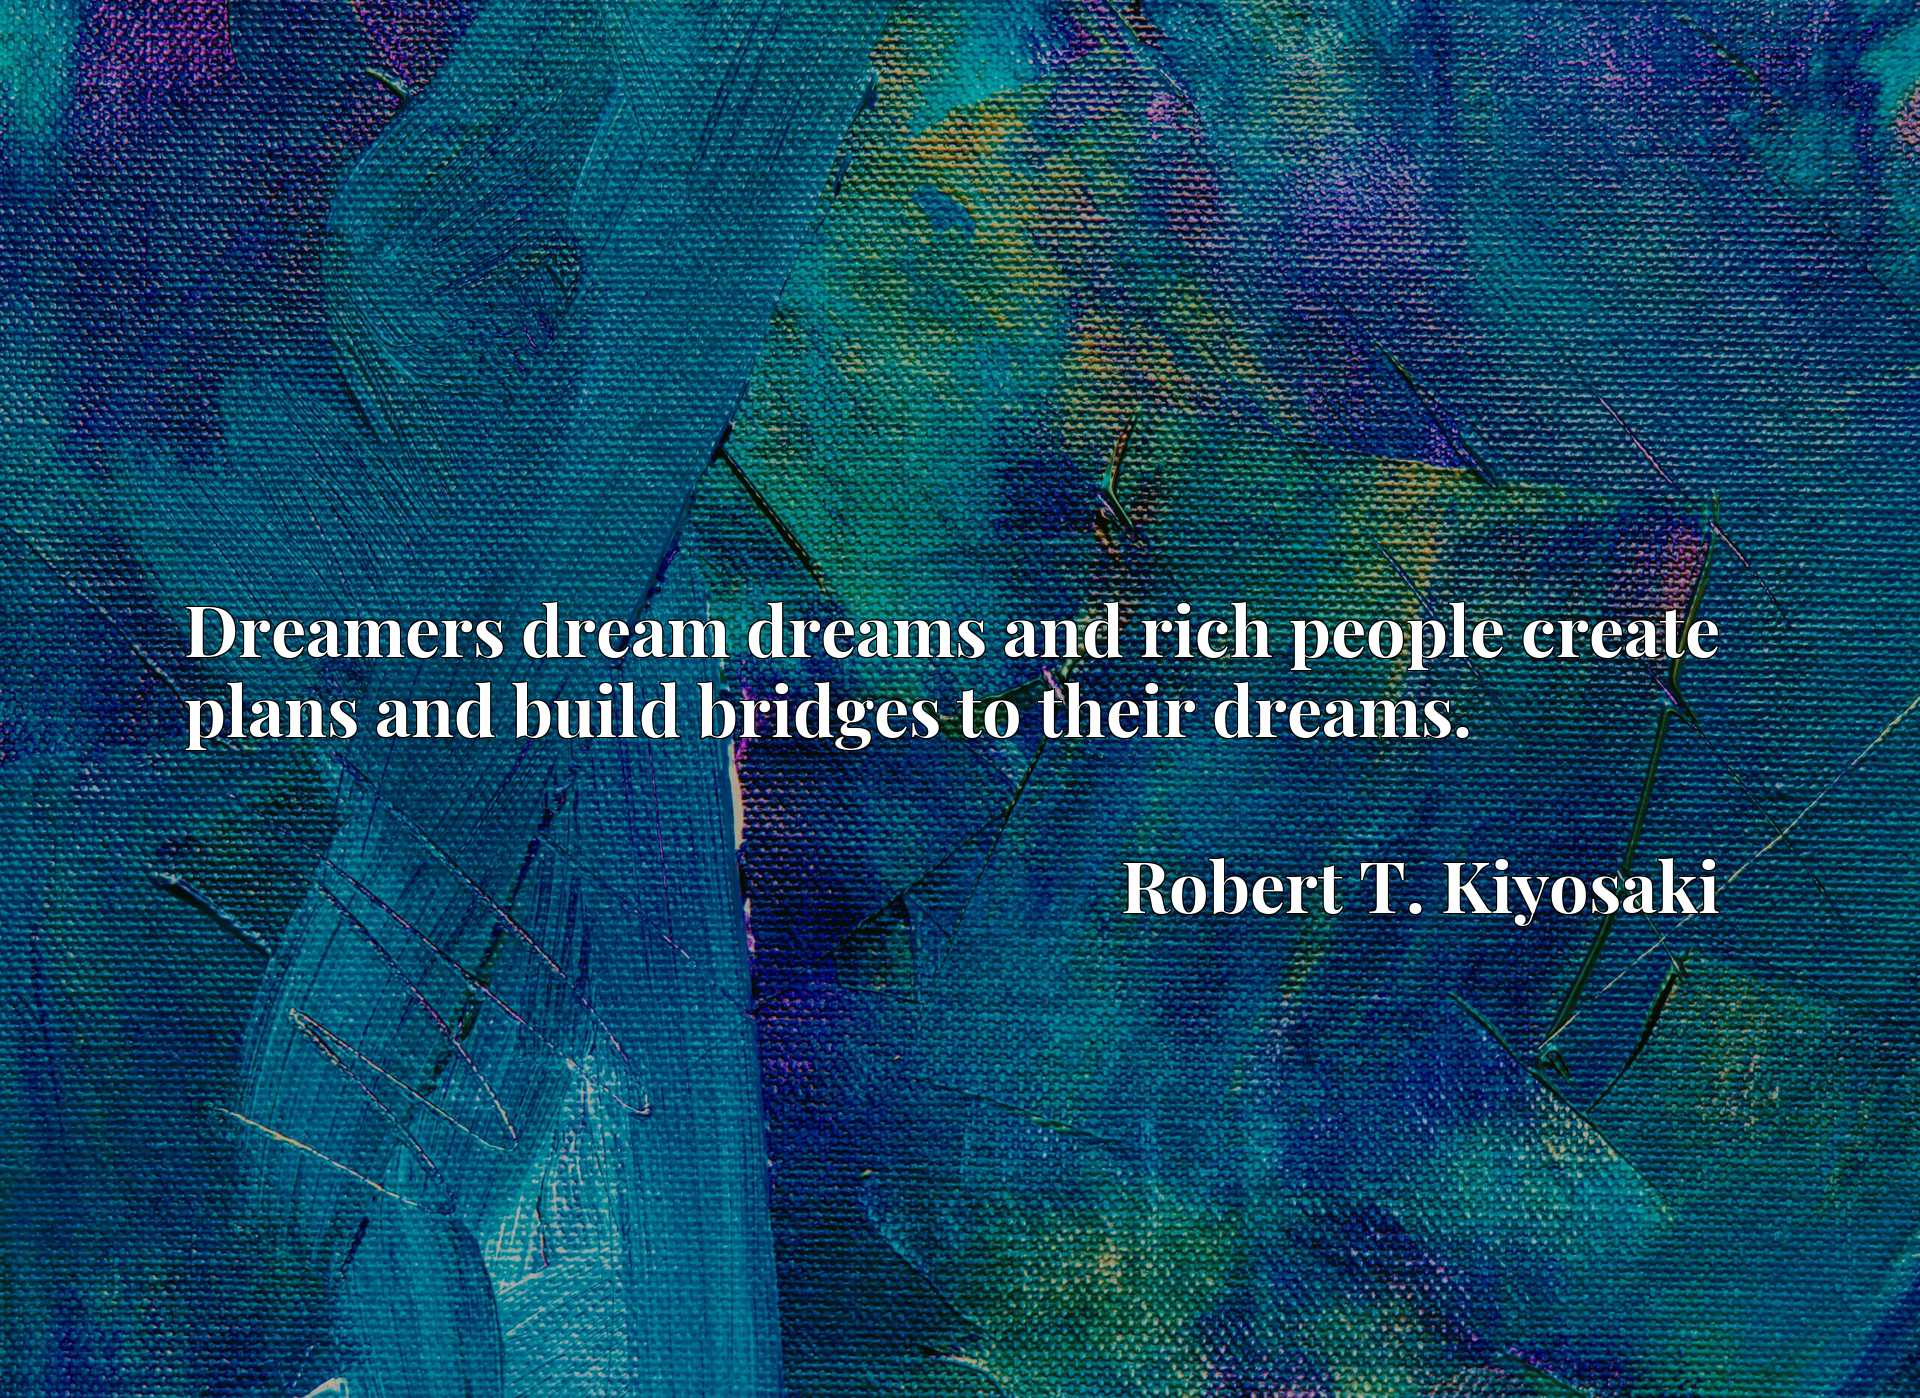 Dreamers dream dreams and rich people create plans and build bridges to their dreams.